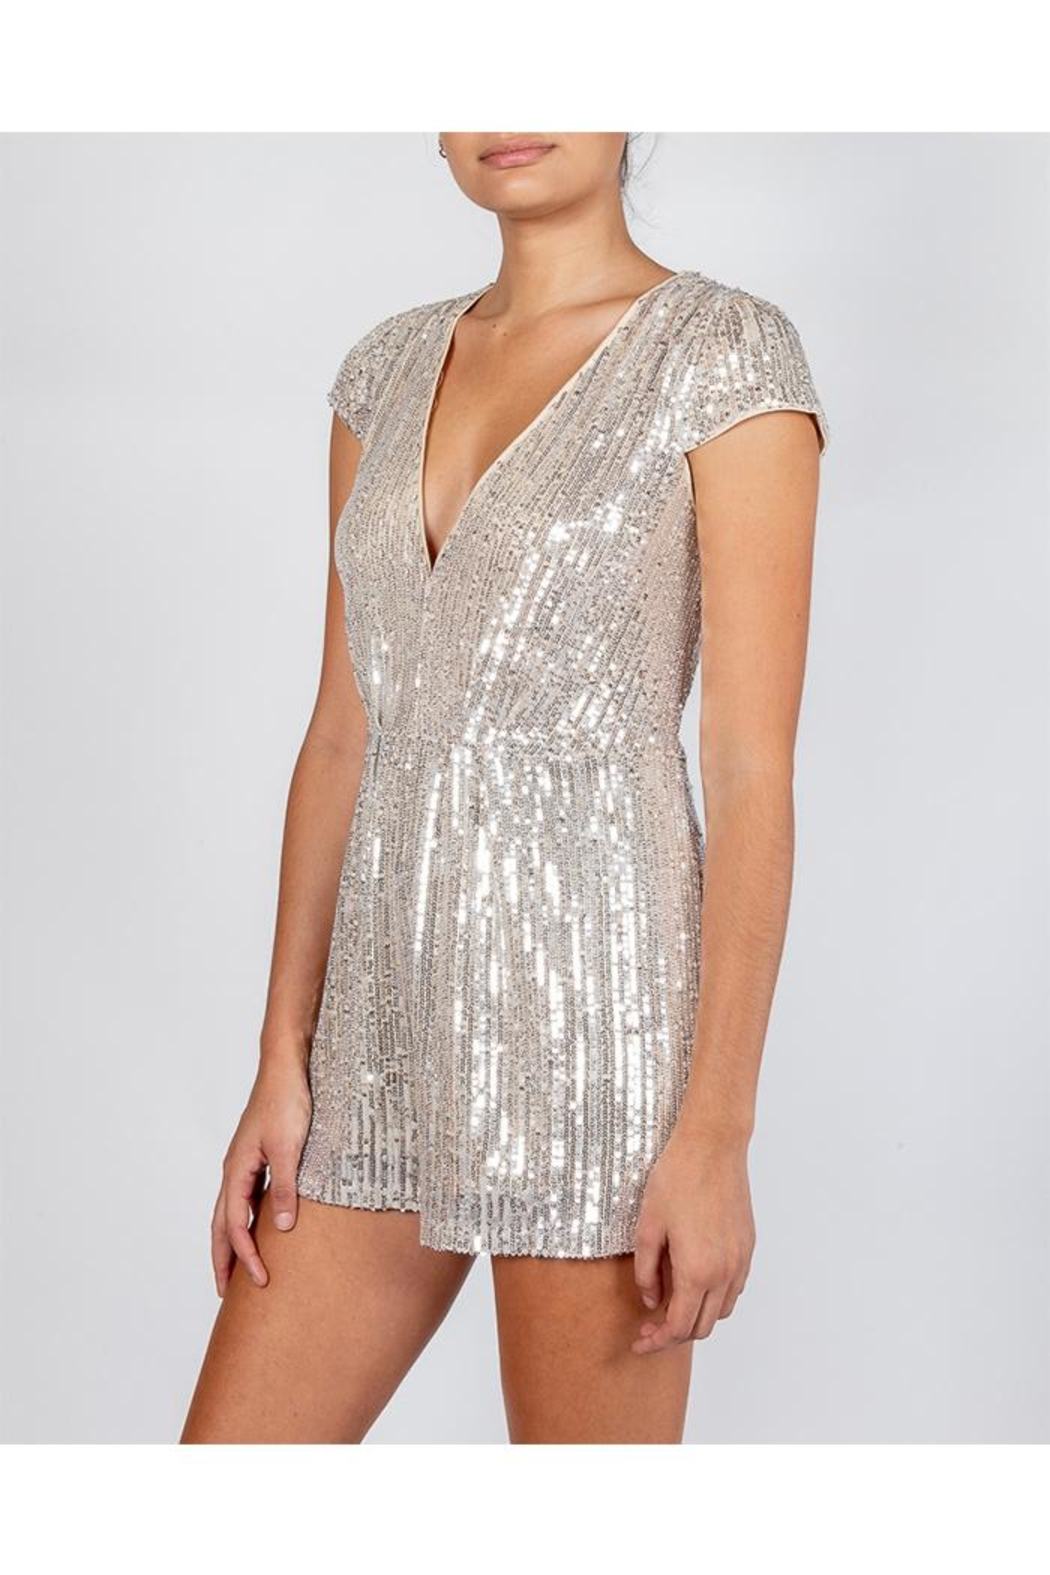 luxxel Silver Sequin Romper - Front Full Image